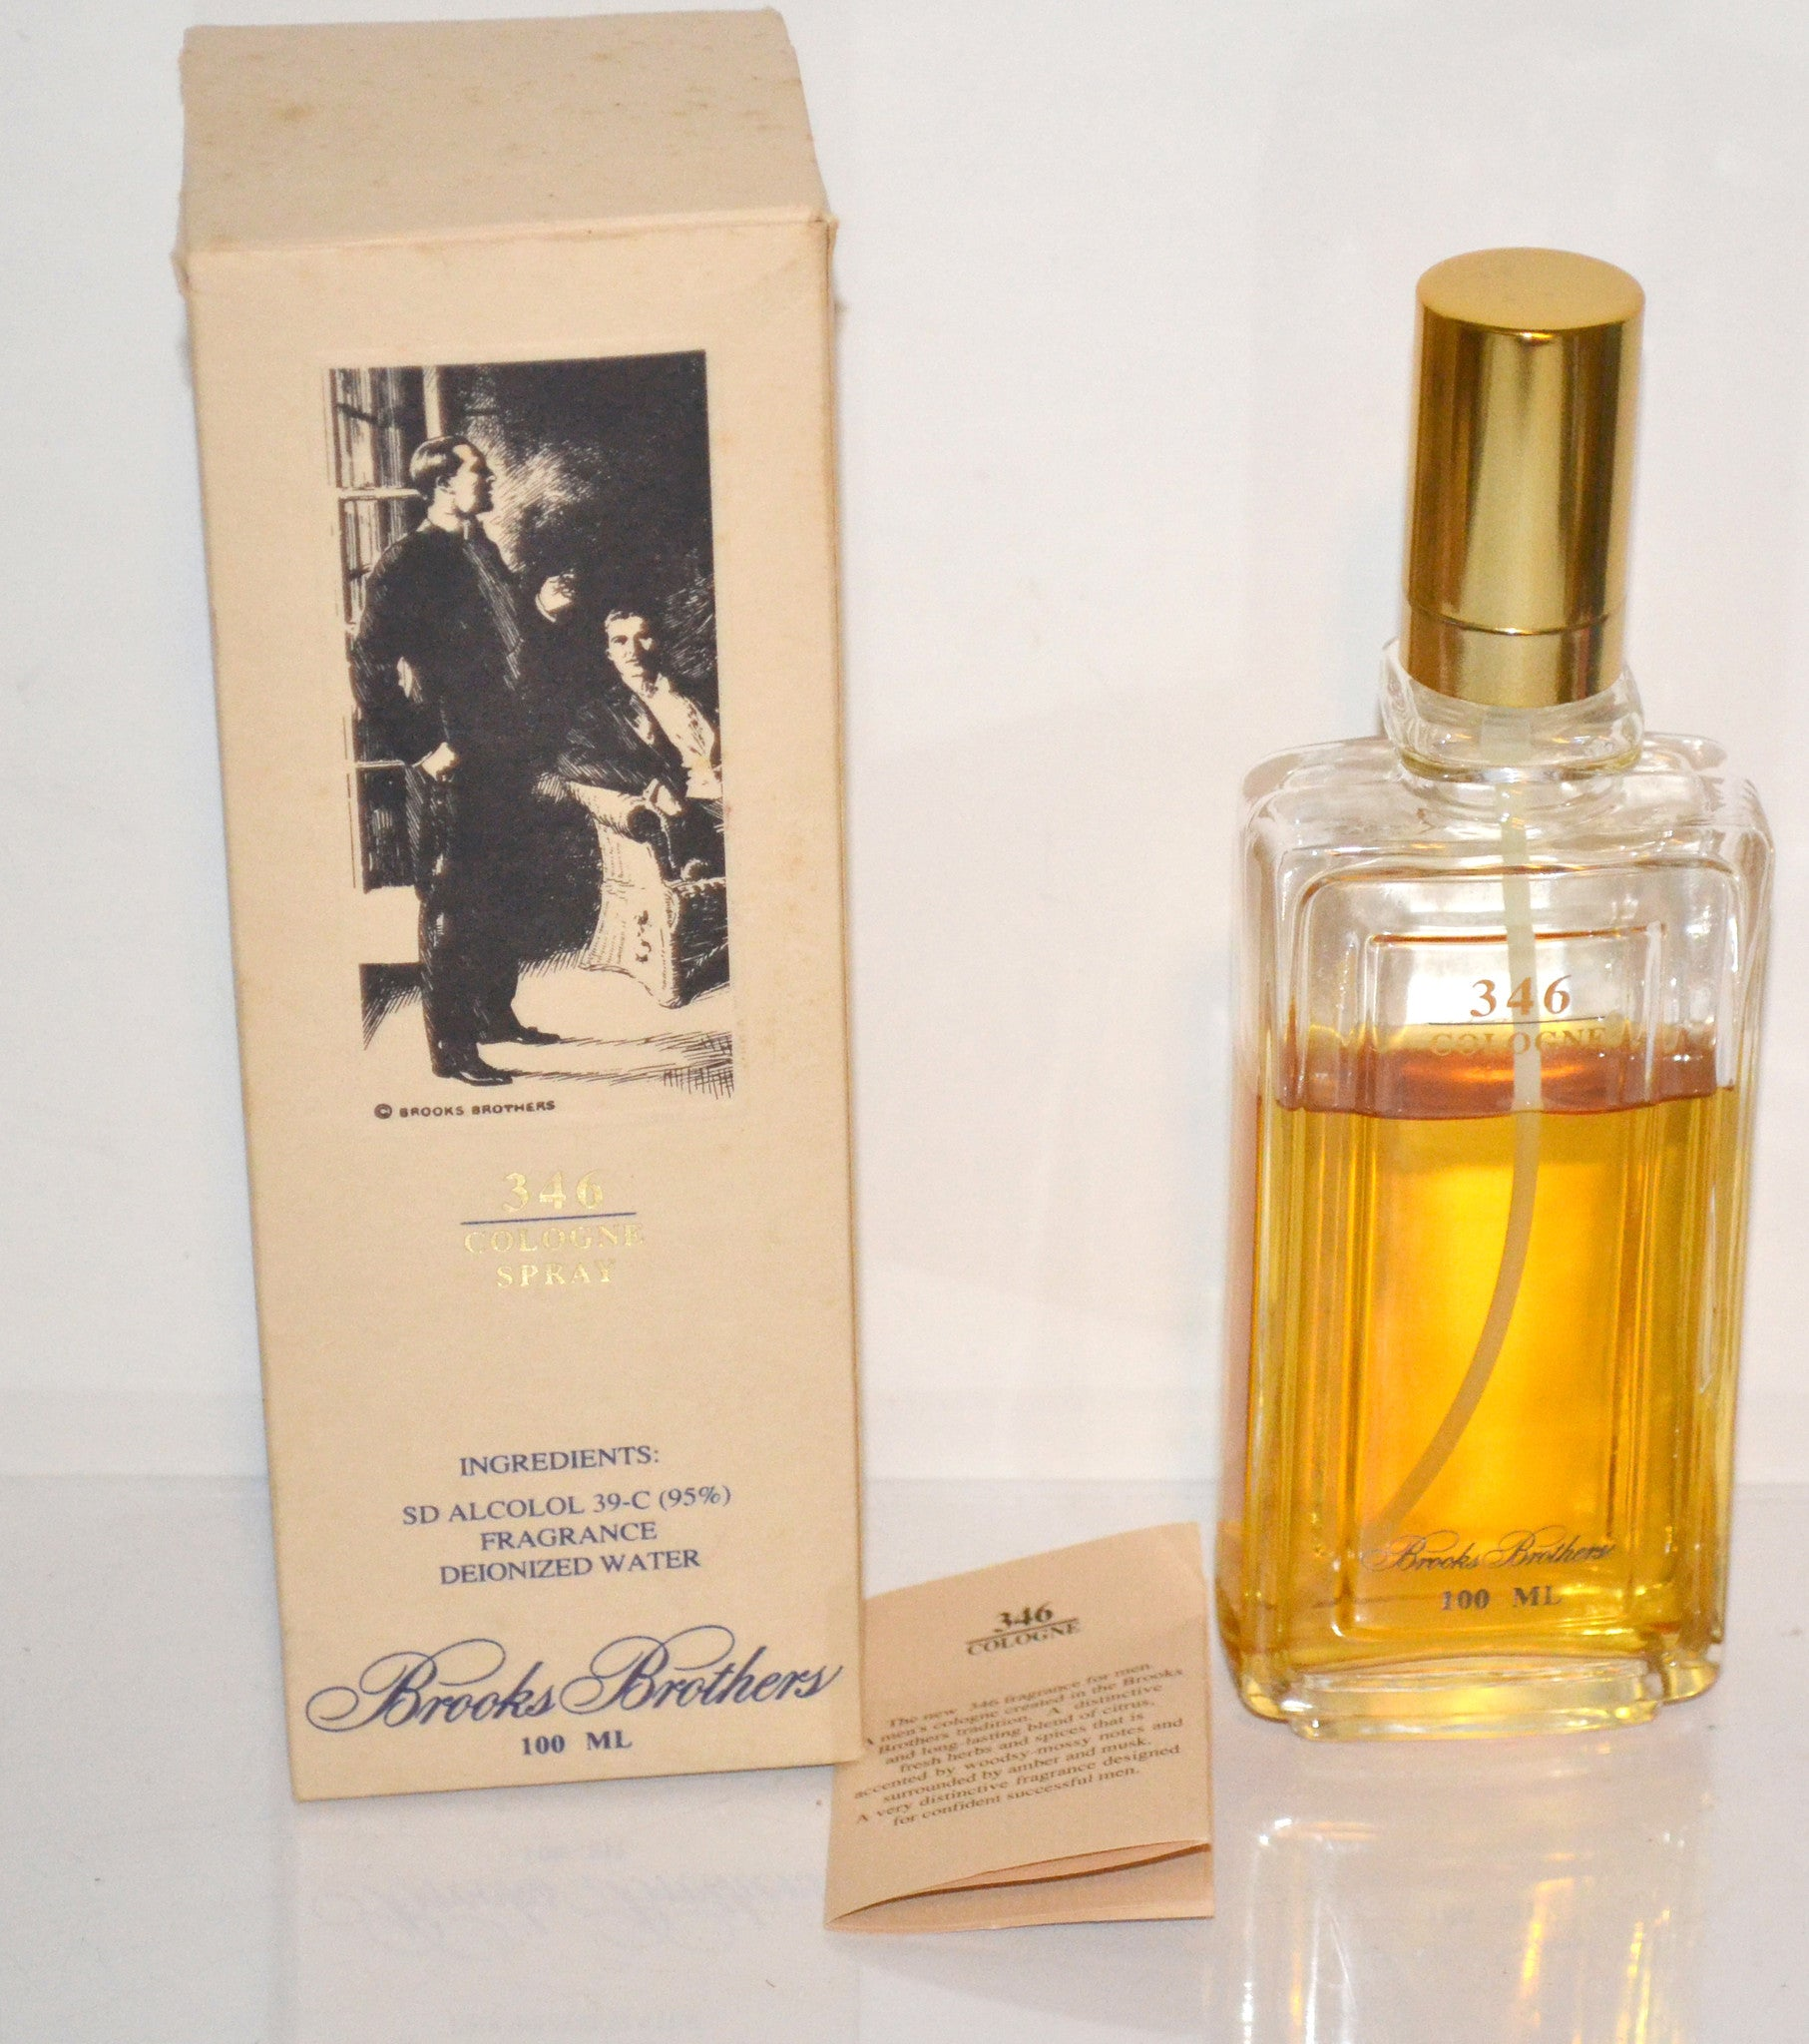 346 Cologne By Brooks Brothers